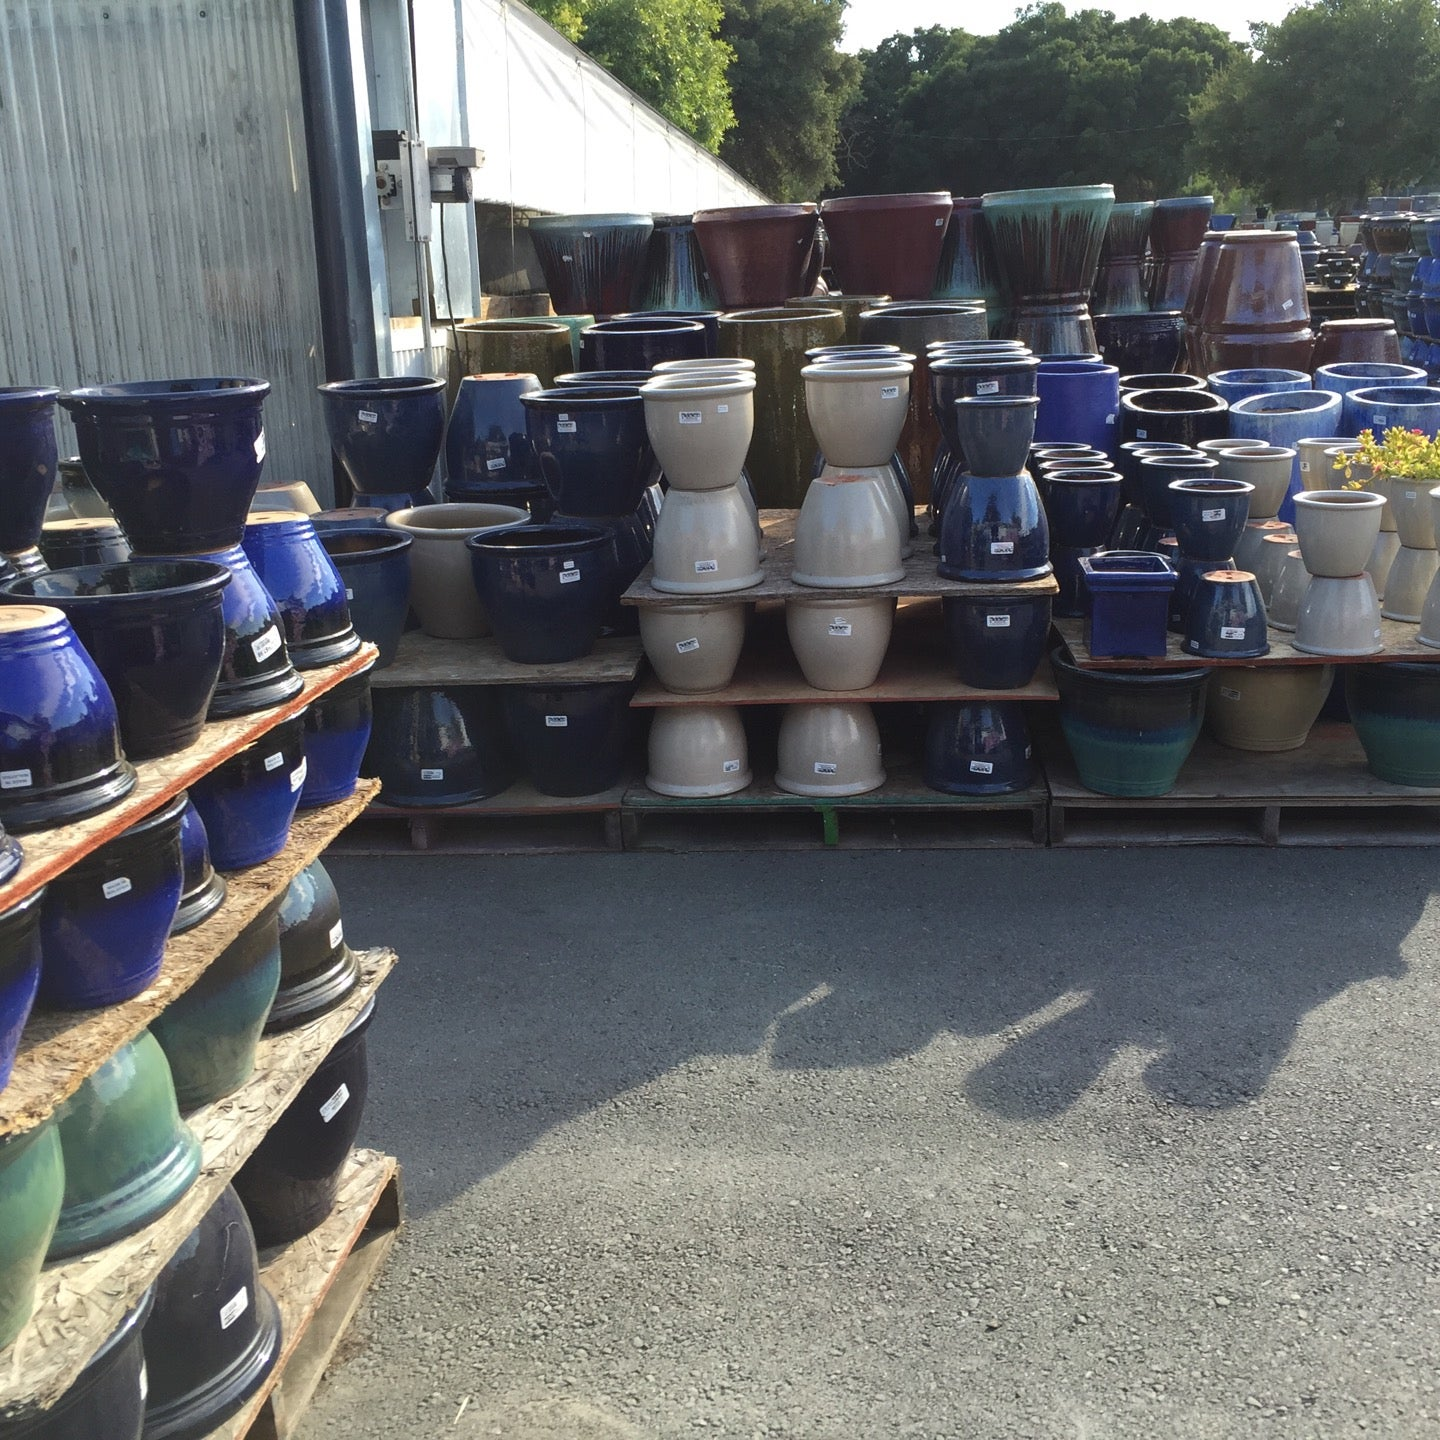 Plant and Pottery Outlet in Sunol - Parent Reviews on Winnie